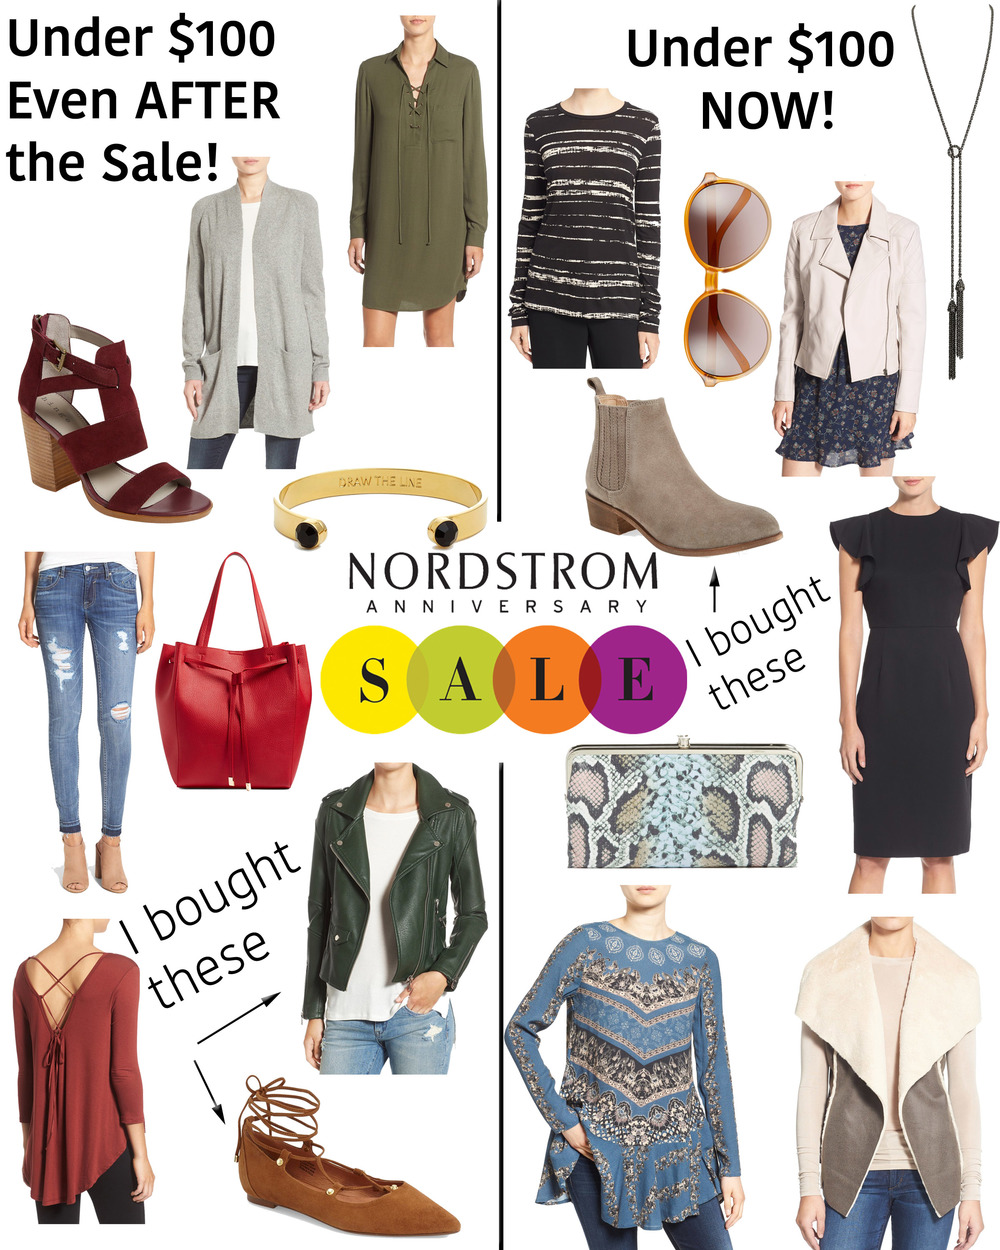 the best of the nordstrom sale 2016 under $100 || www.polishedclosets.com